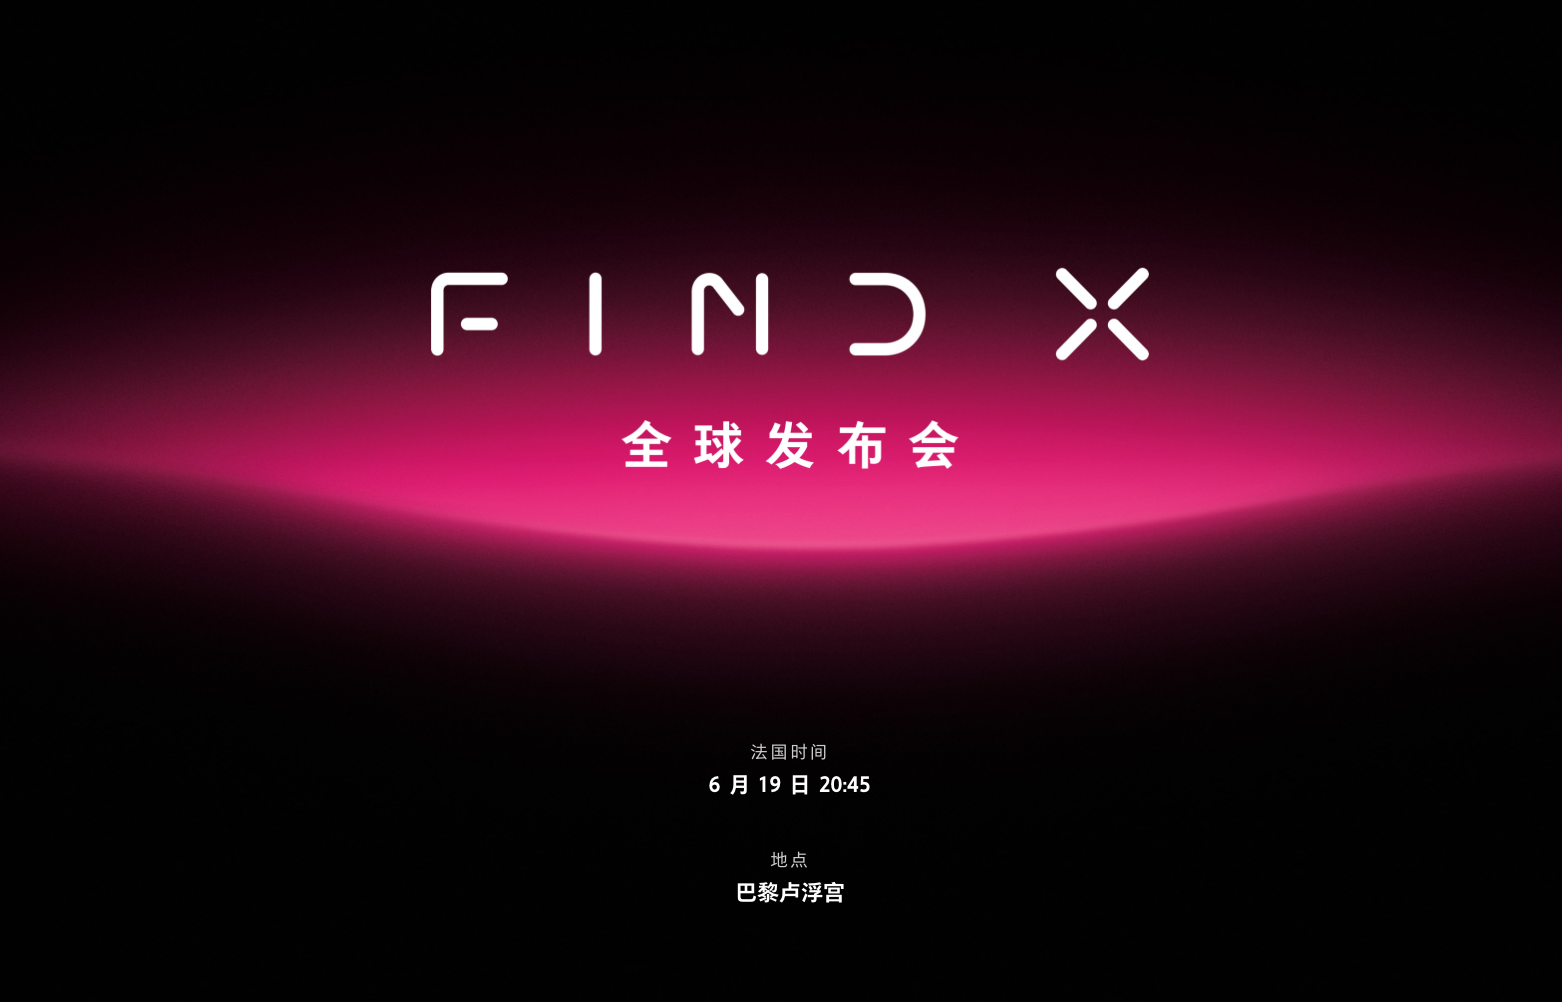 OPPO20日在巴黎首发Find X旗舰智能手机